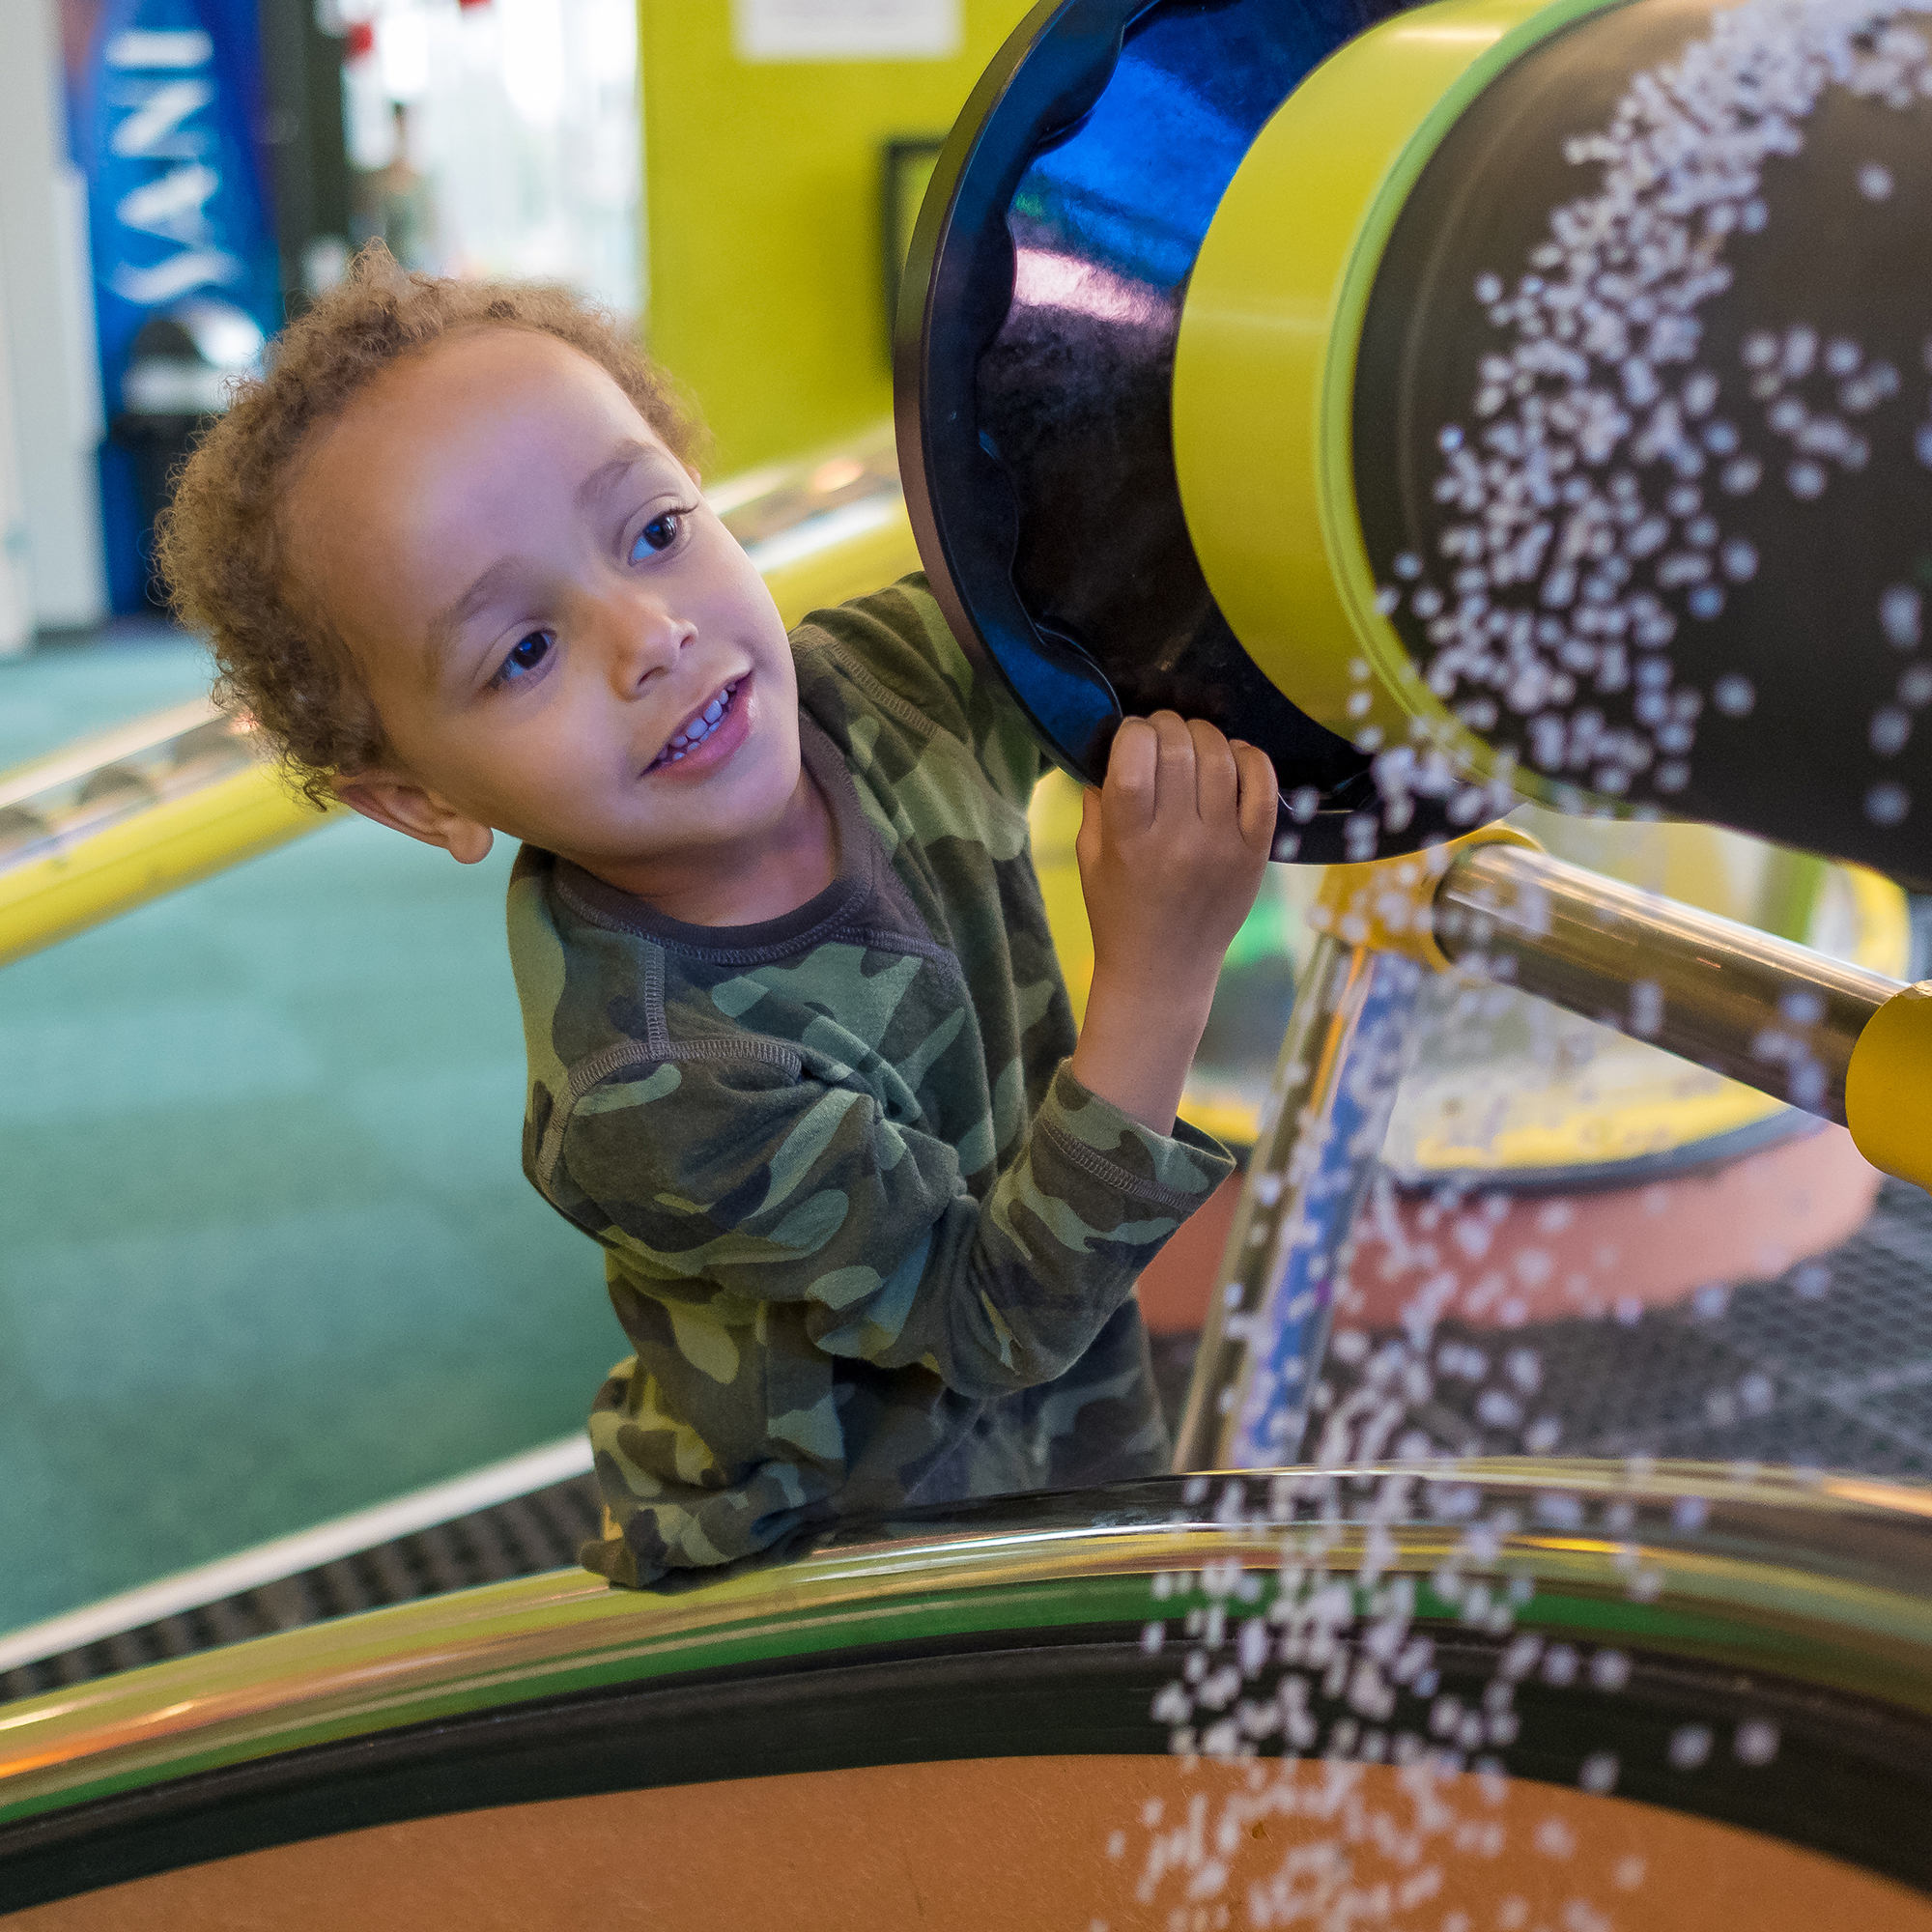 Small boy turns a wheel while white pellets fall over the edge